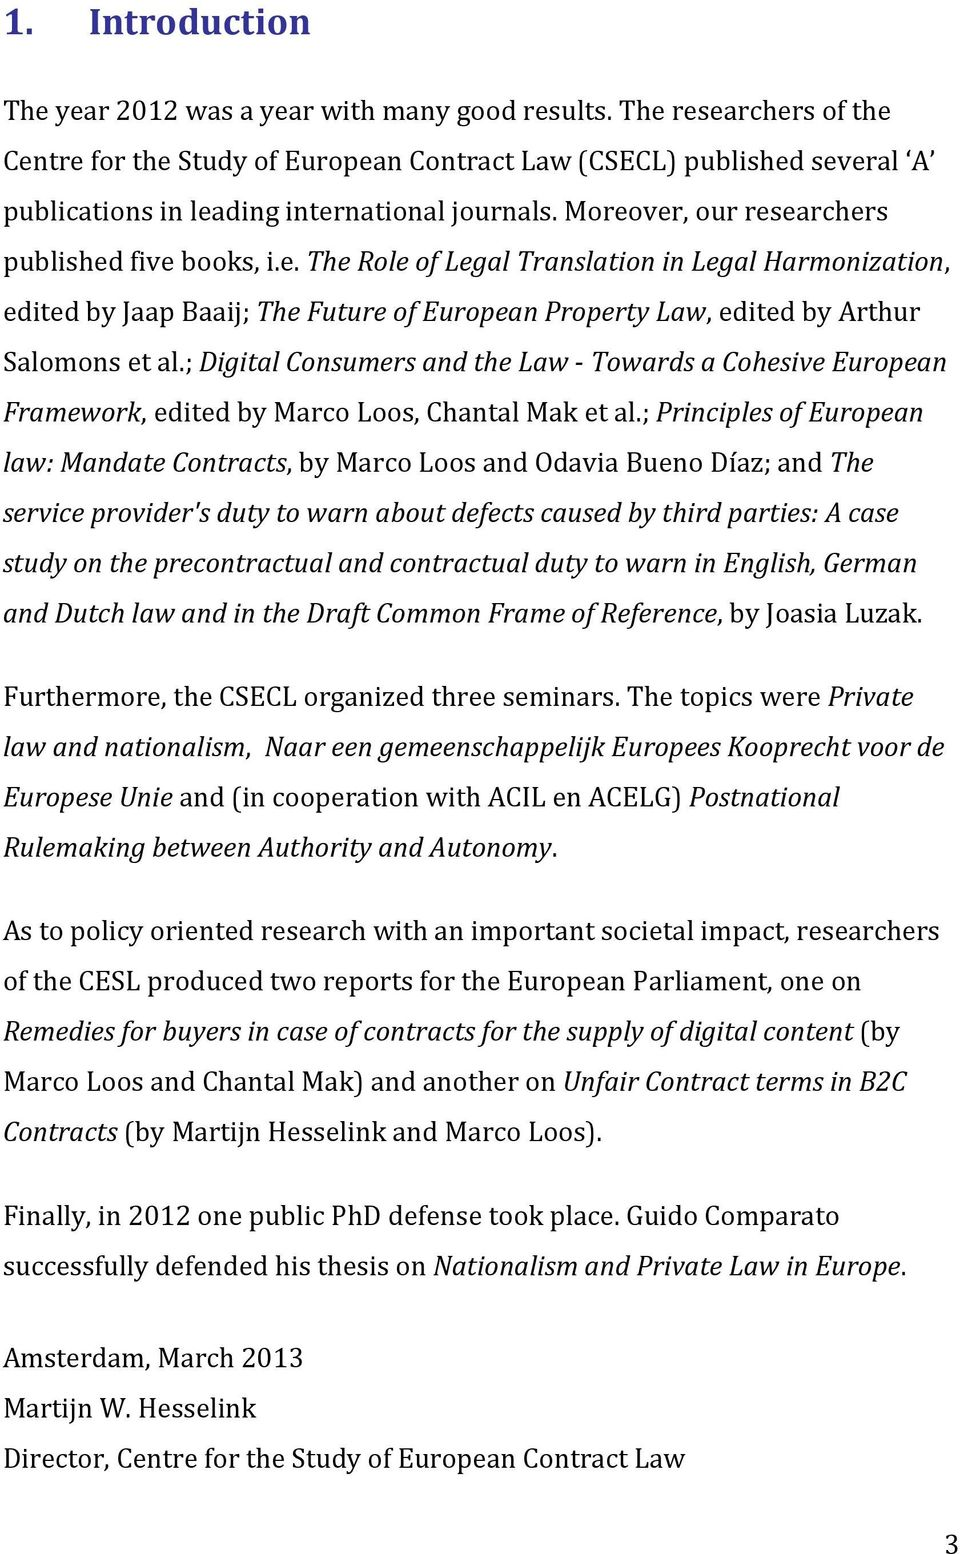 ; Digital Consumers and the Law - Towards a Cohesive European Framework, edited by Marco Loos, Chantal Mak et al.